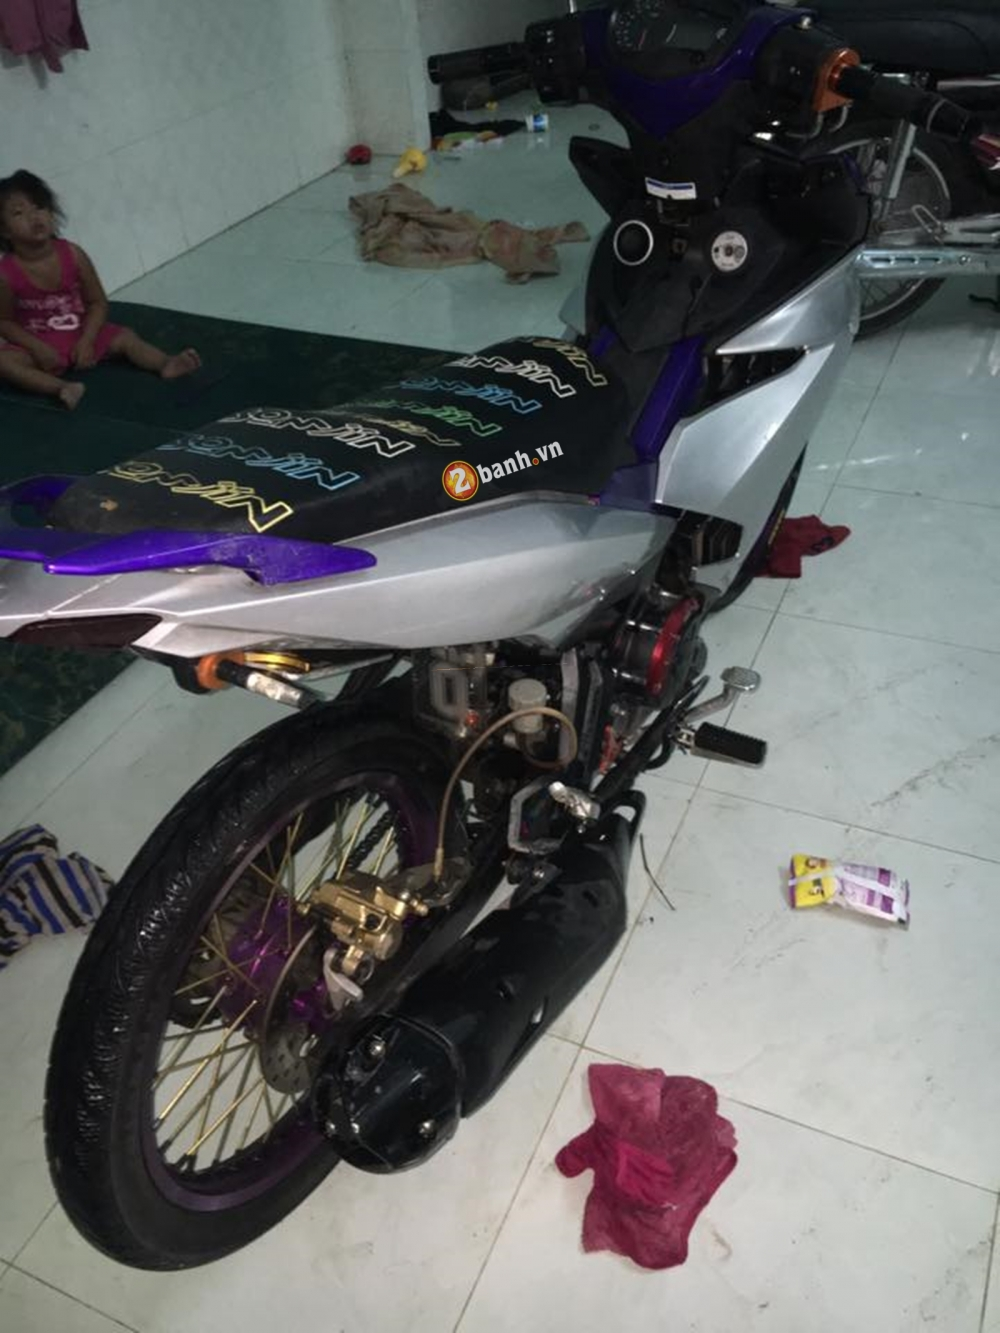 Exciter 150 don nhe cung banh cam - 3